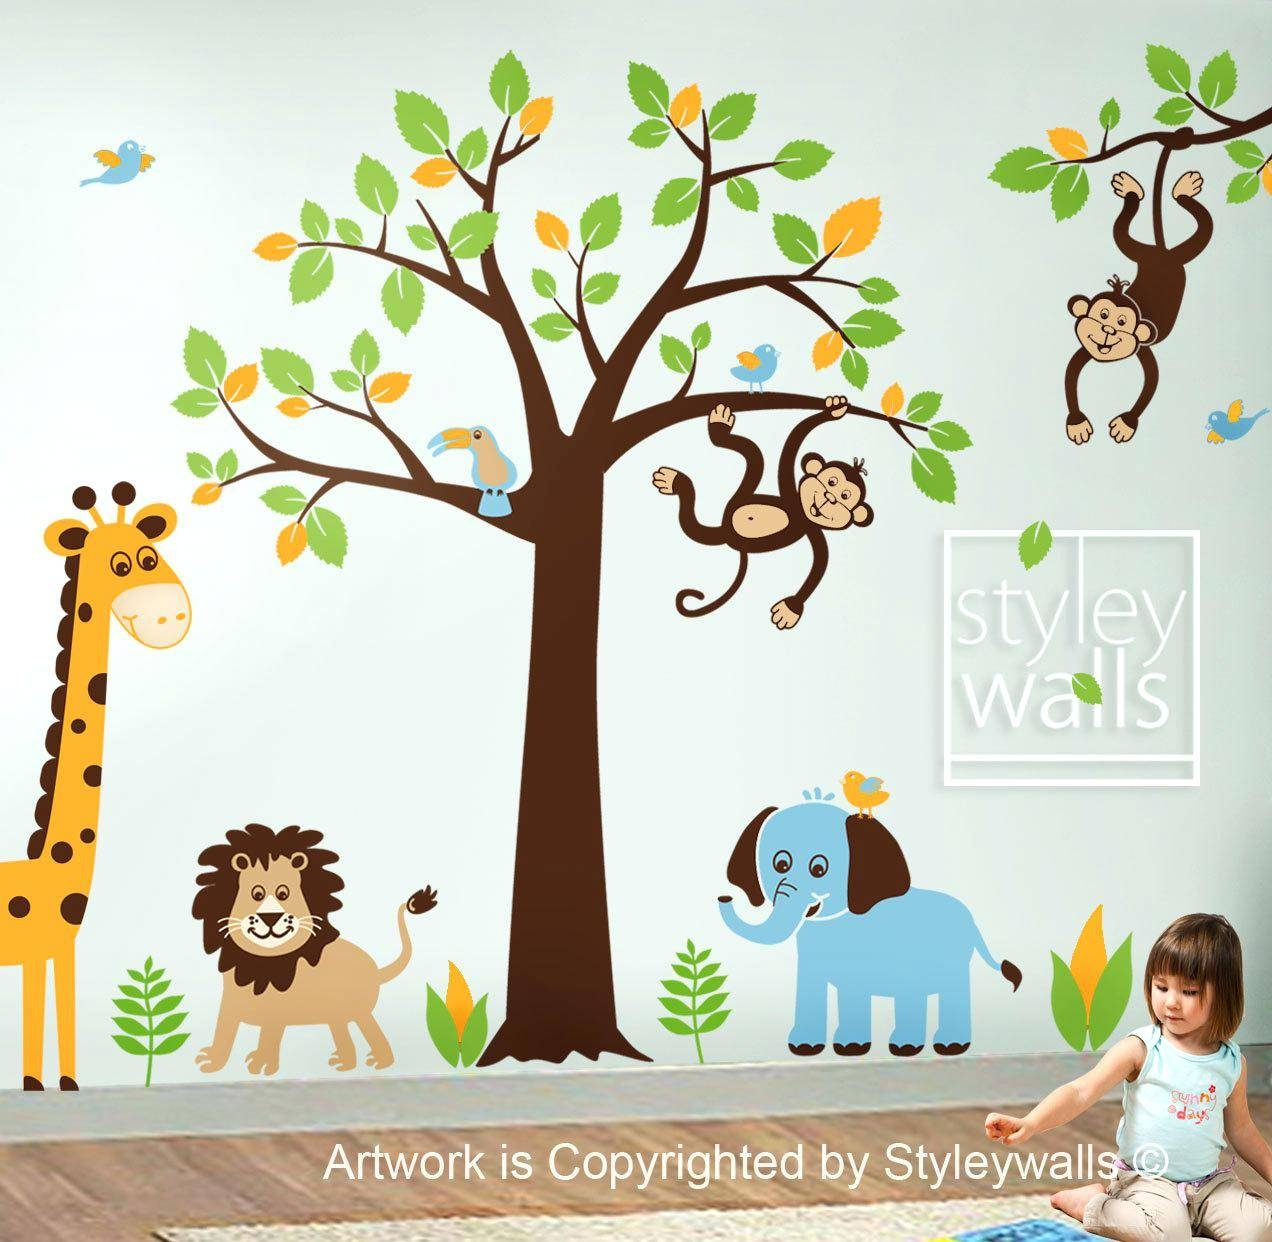 Baby Jungle Wall Decals Deluxe Safari Nursery Wall Art Stickers Intended For Current Jungle Animal Wall Art (View 3 of 20)